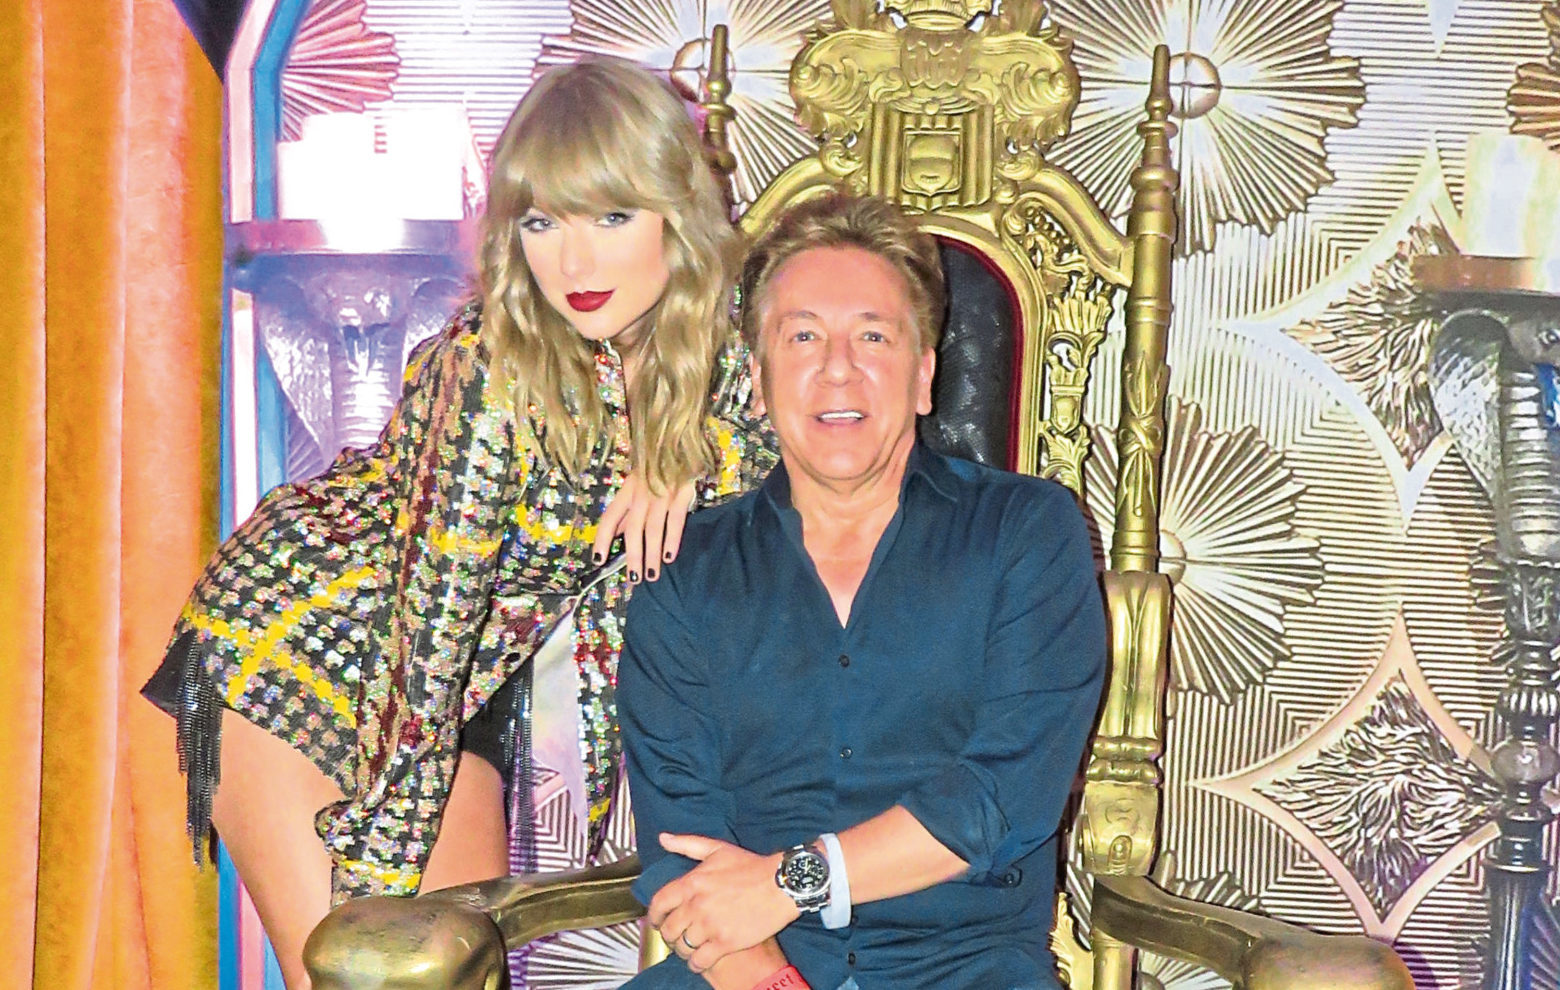 Game Of Thrones? Singing superstar Taylor Swift and I prove we're showbiz royalty